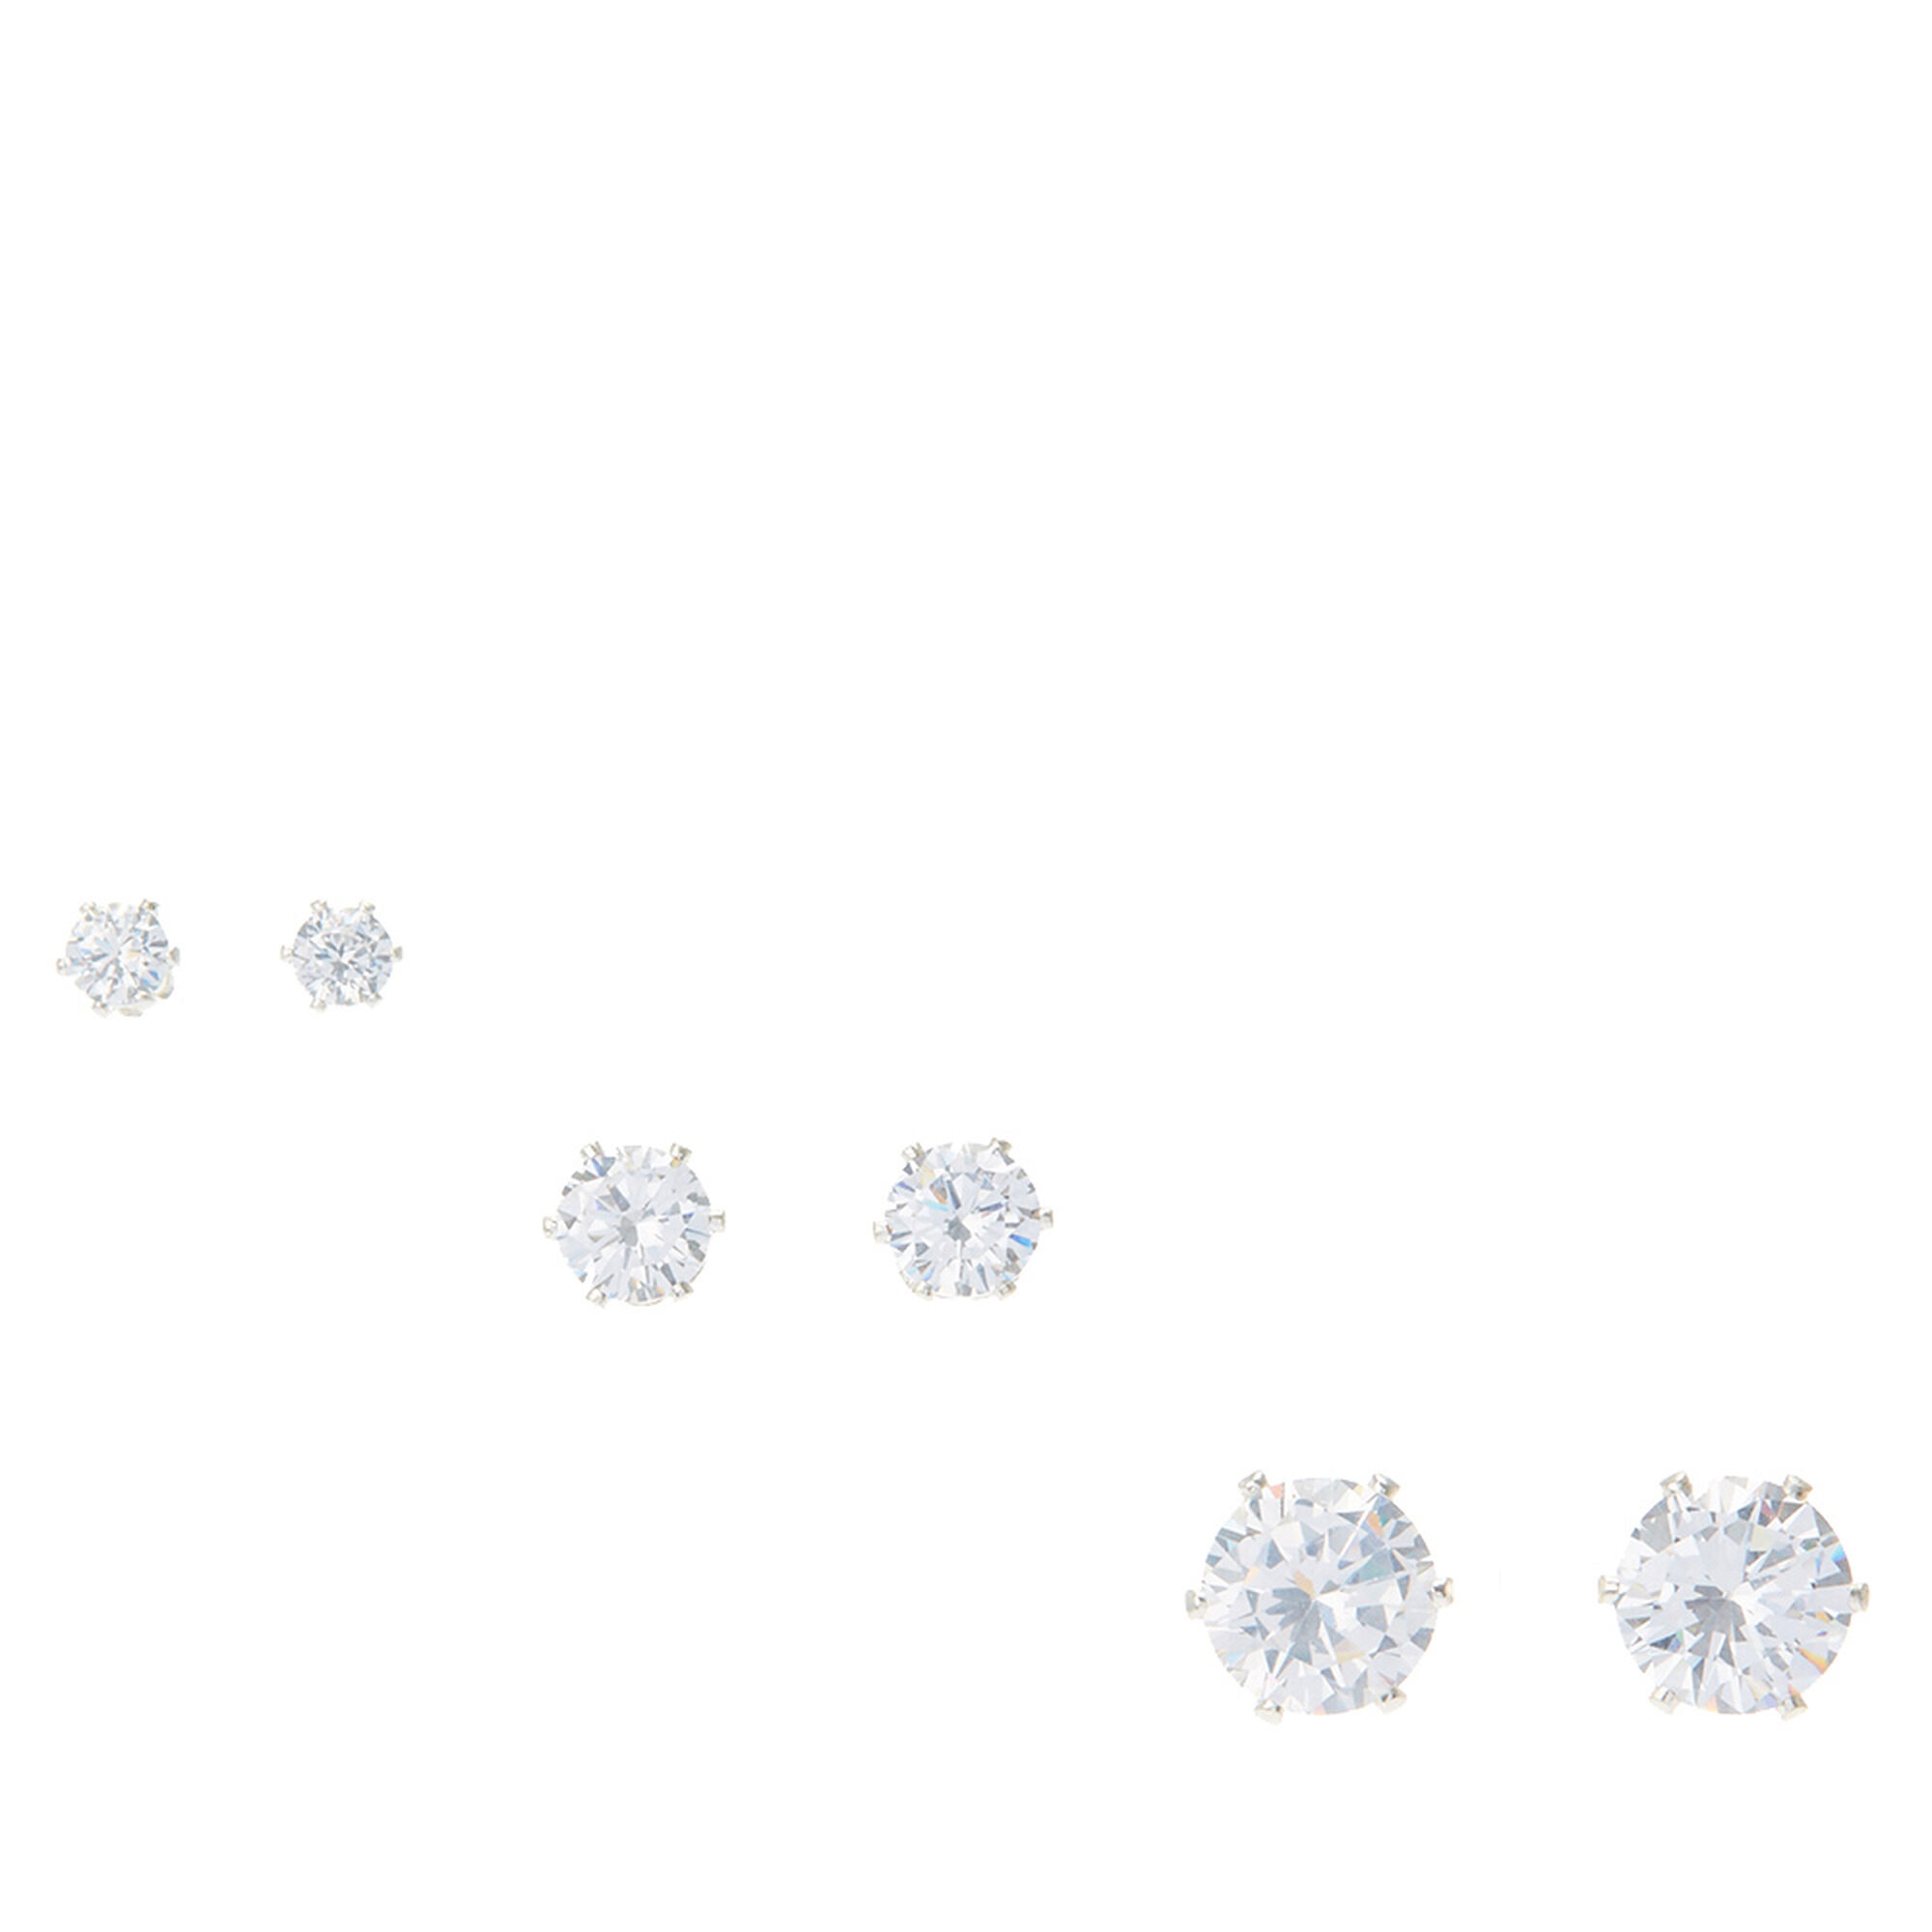 4mm 6mm 9mm cubic zirconia stud earrings set of 3 icing us